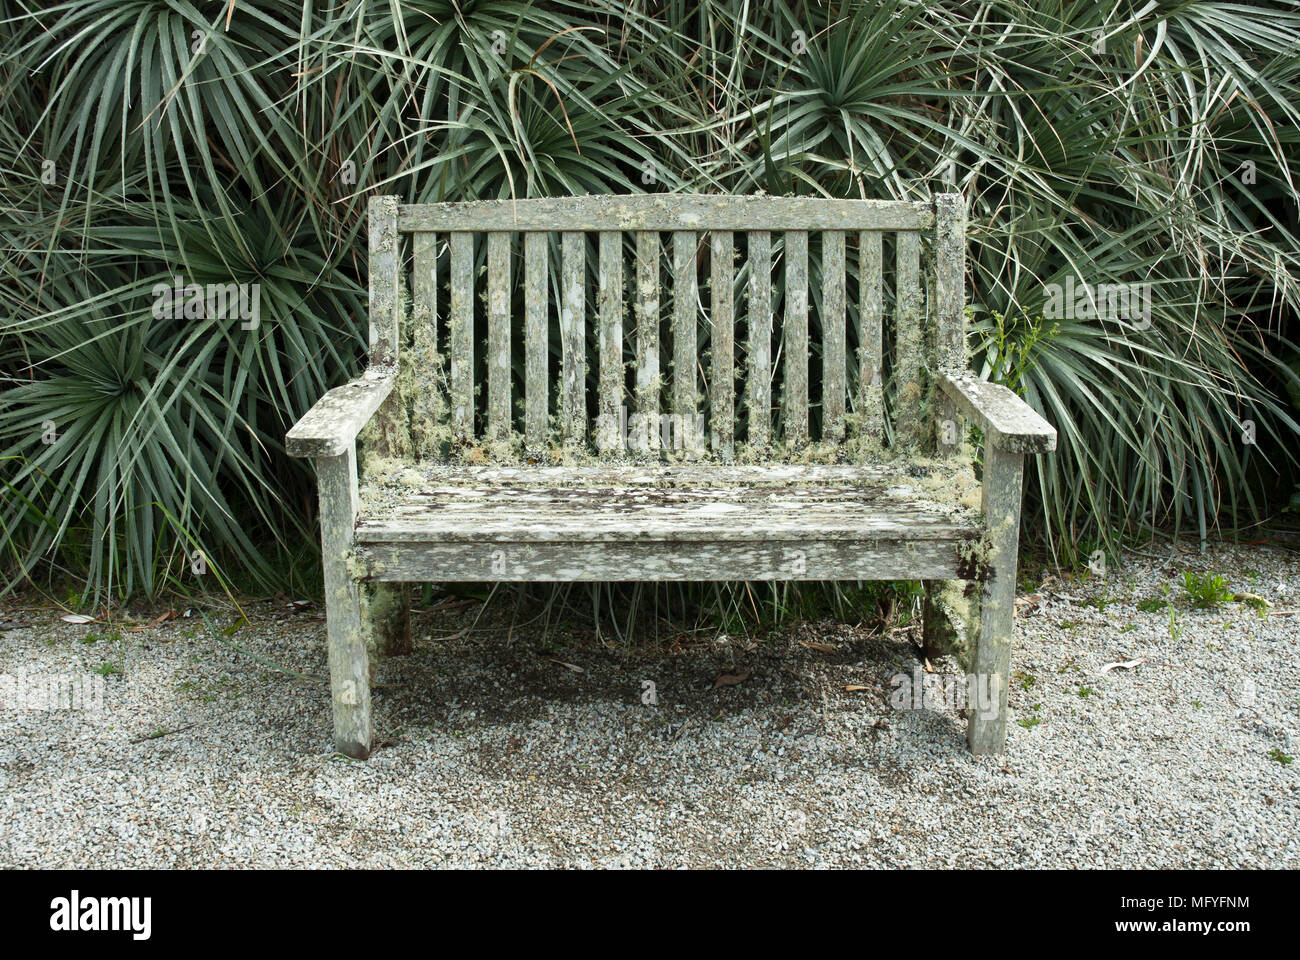 Tonal colours of grey/green/silver with a lichen covered bench in front of ornamental grass. - Stock Image